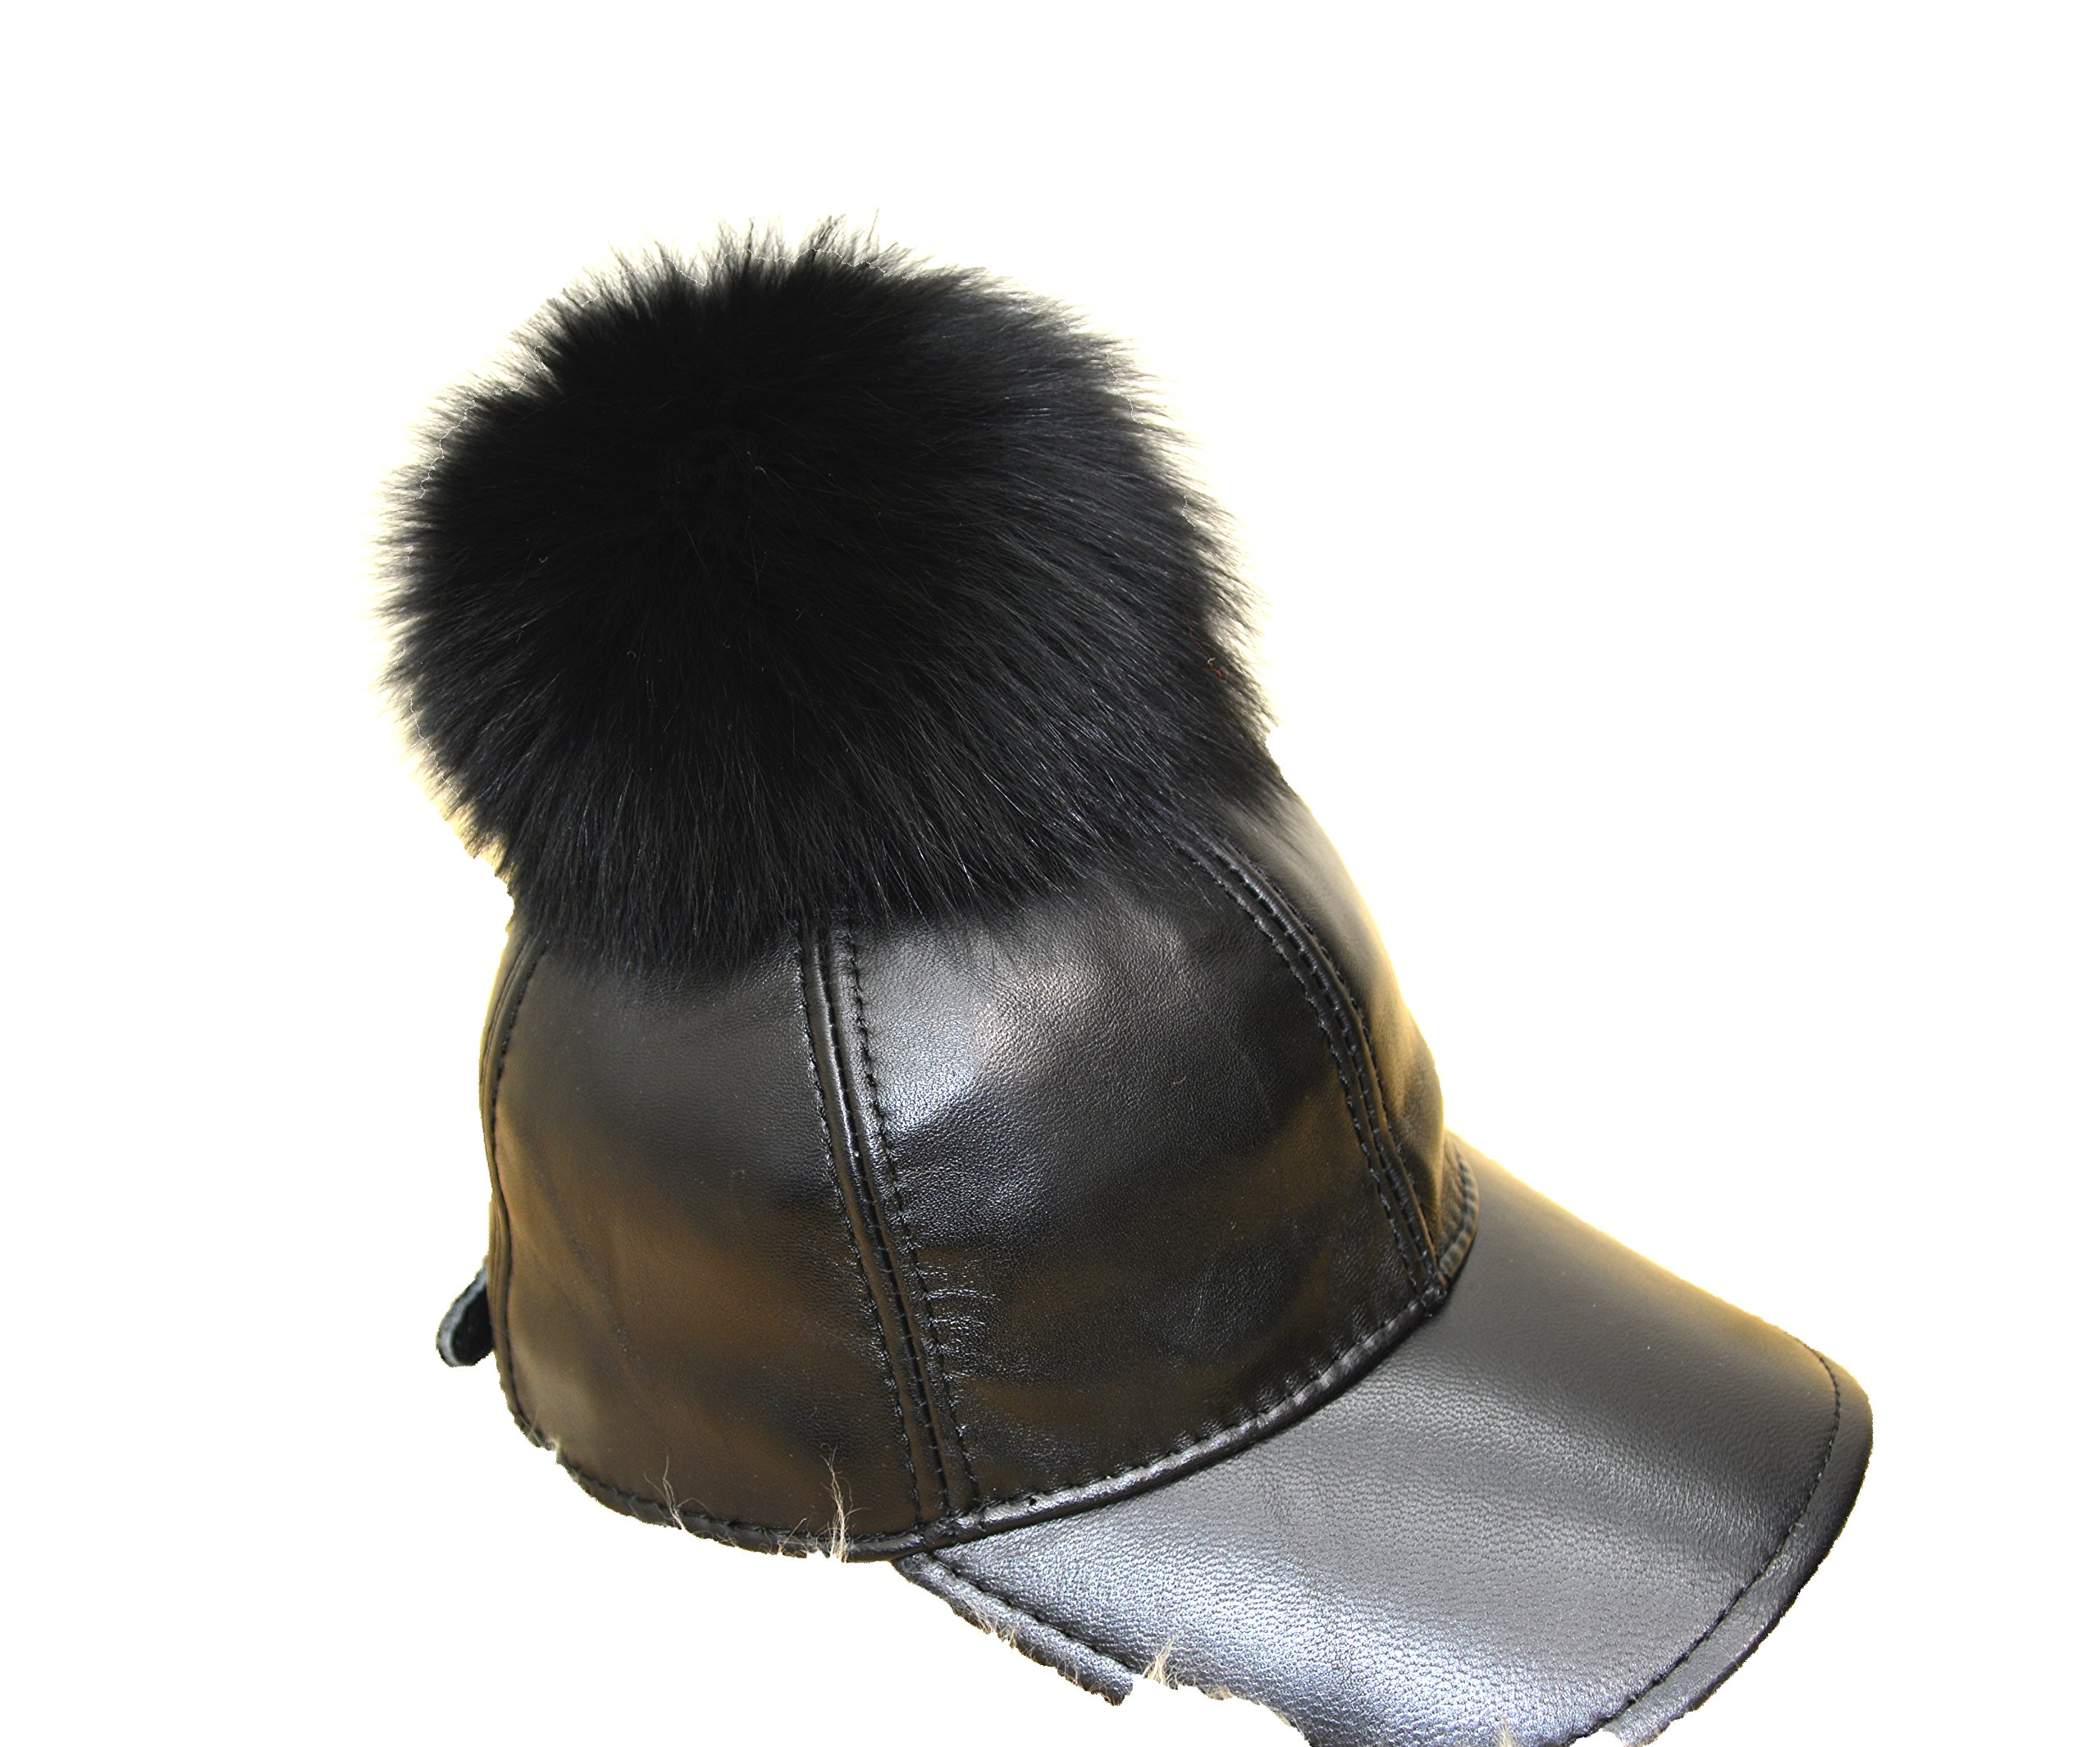 Genuine Leather Real Fox Fur Pom Pom Adjustable Baseball Cap, Black and Brown (Black) by Hima